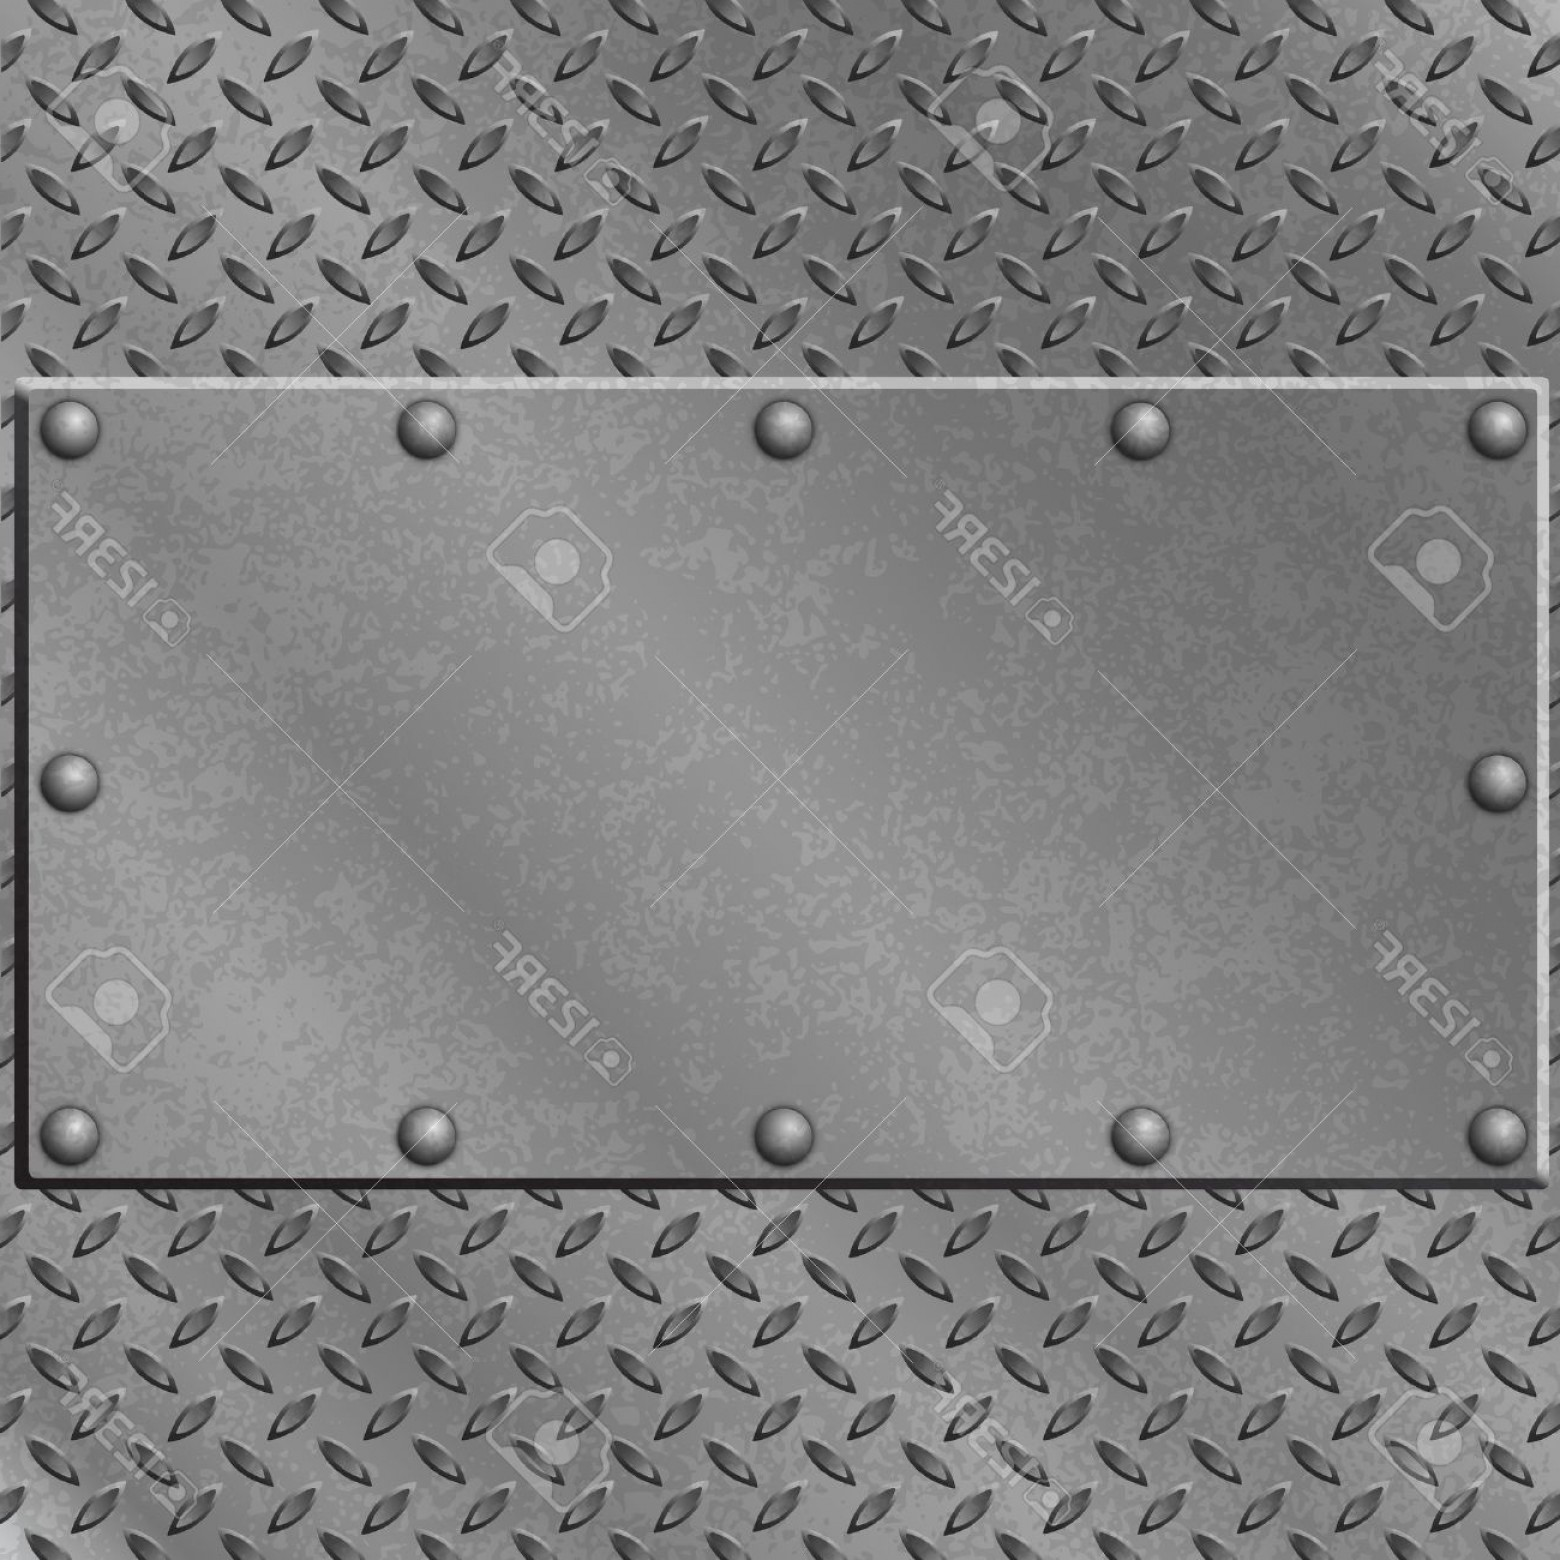 Tread Plate Vector: Photoa Metal Background With Tread Plate And Rivets